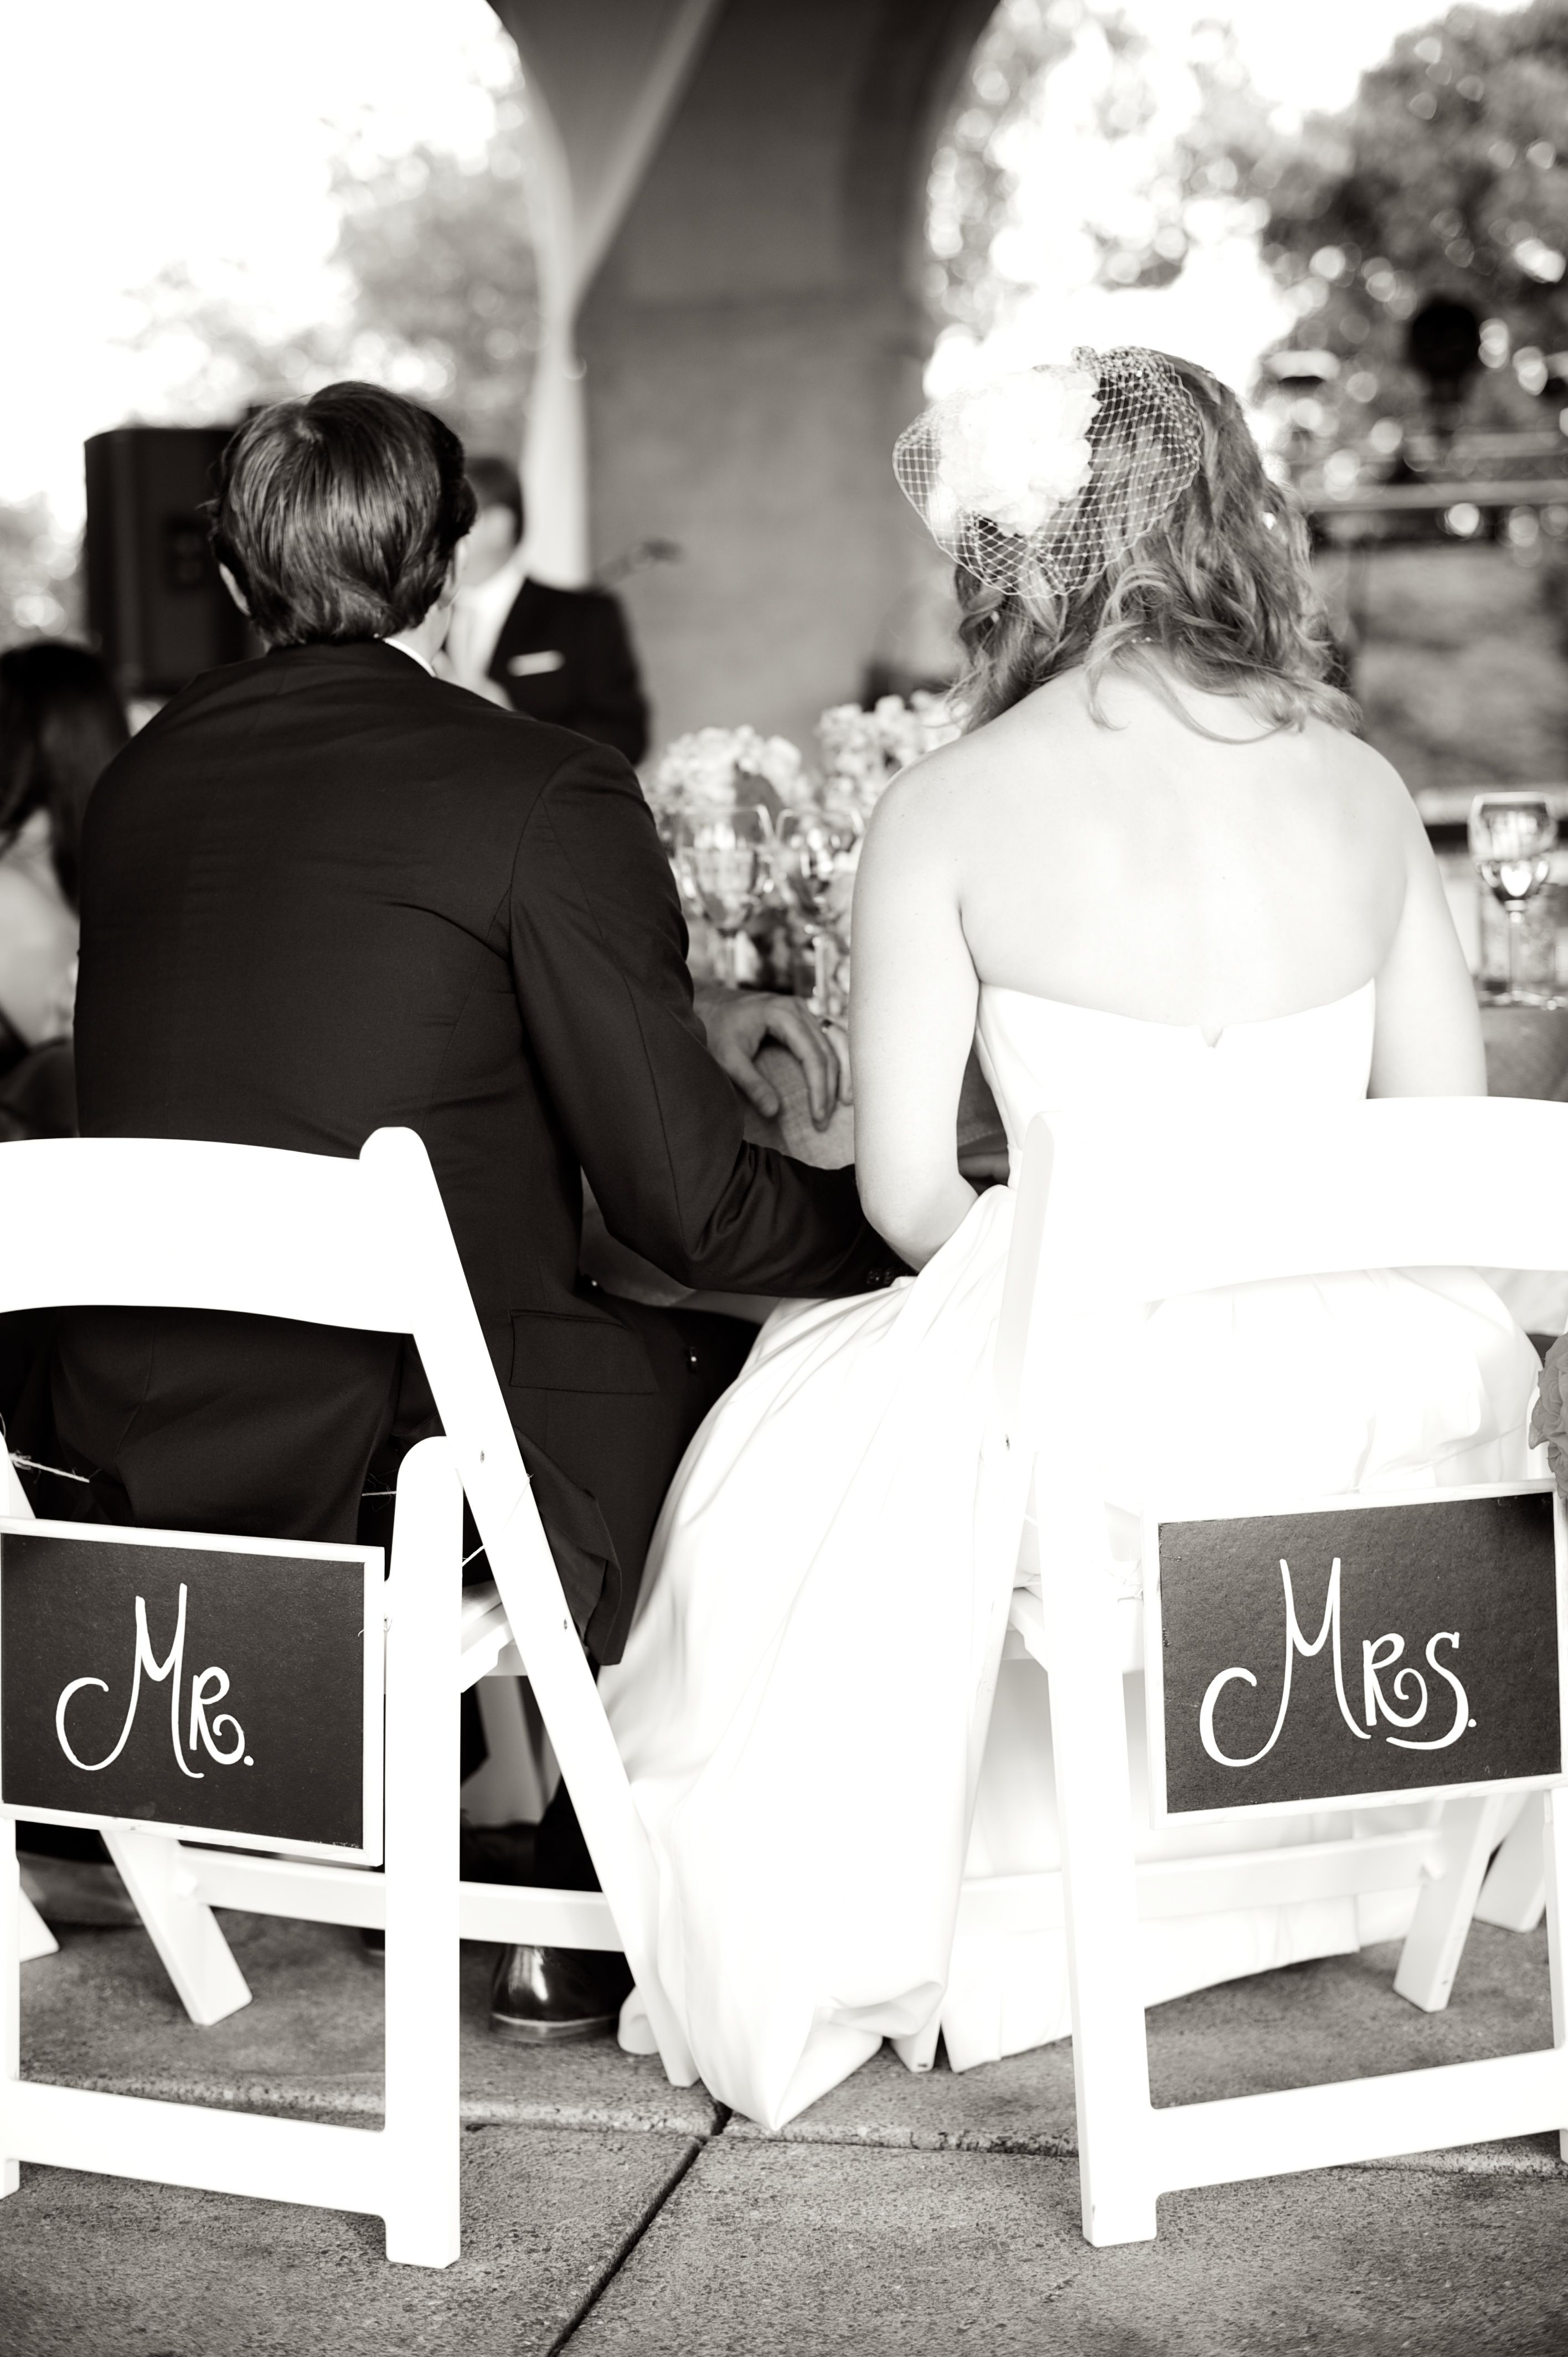 Mr. and Mrs. signs---Compliments of Ms. Marissa Seuc :-)